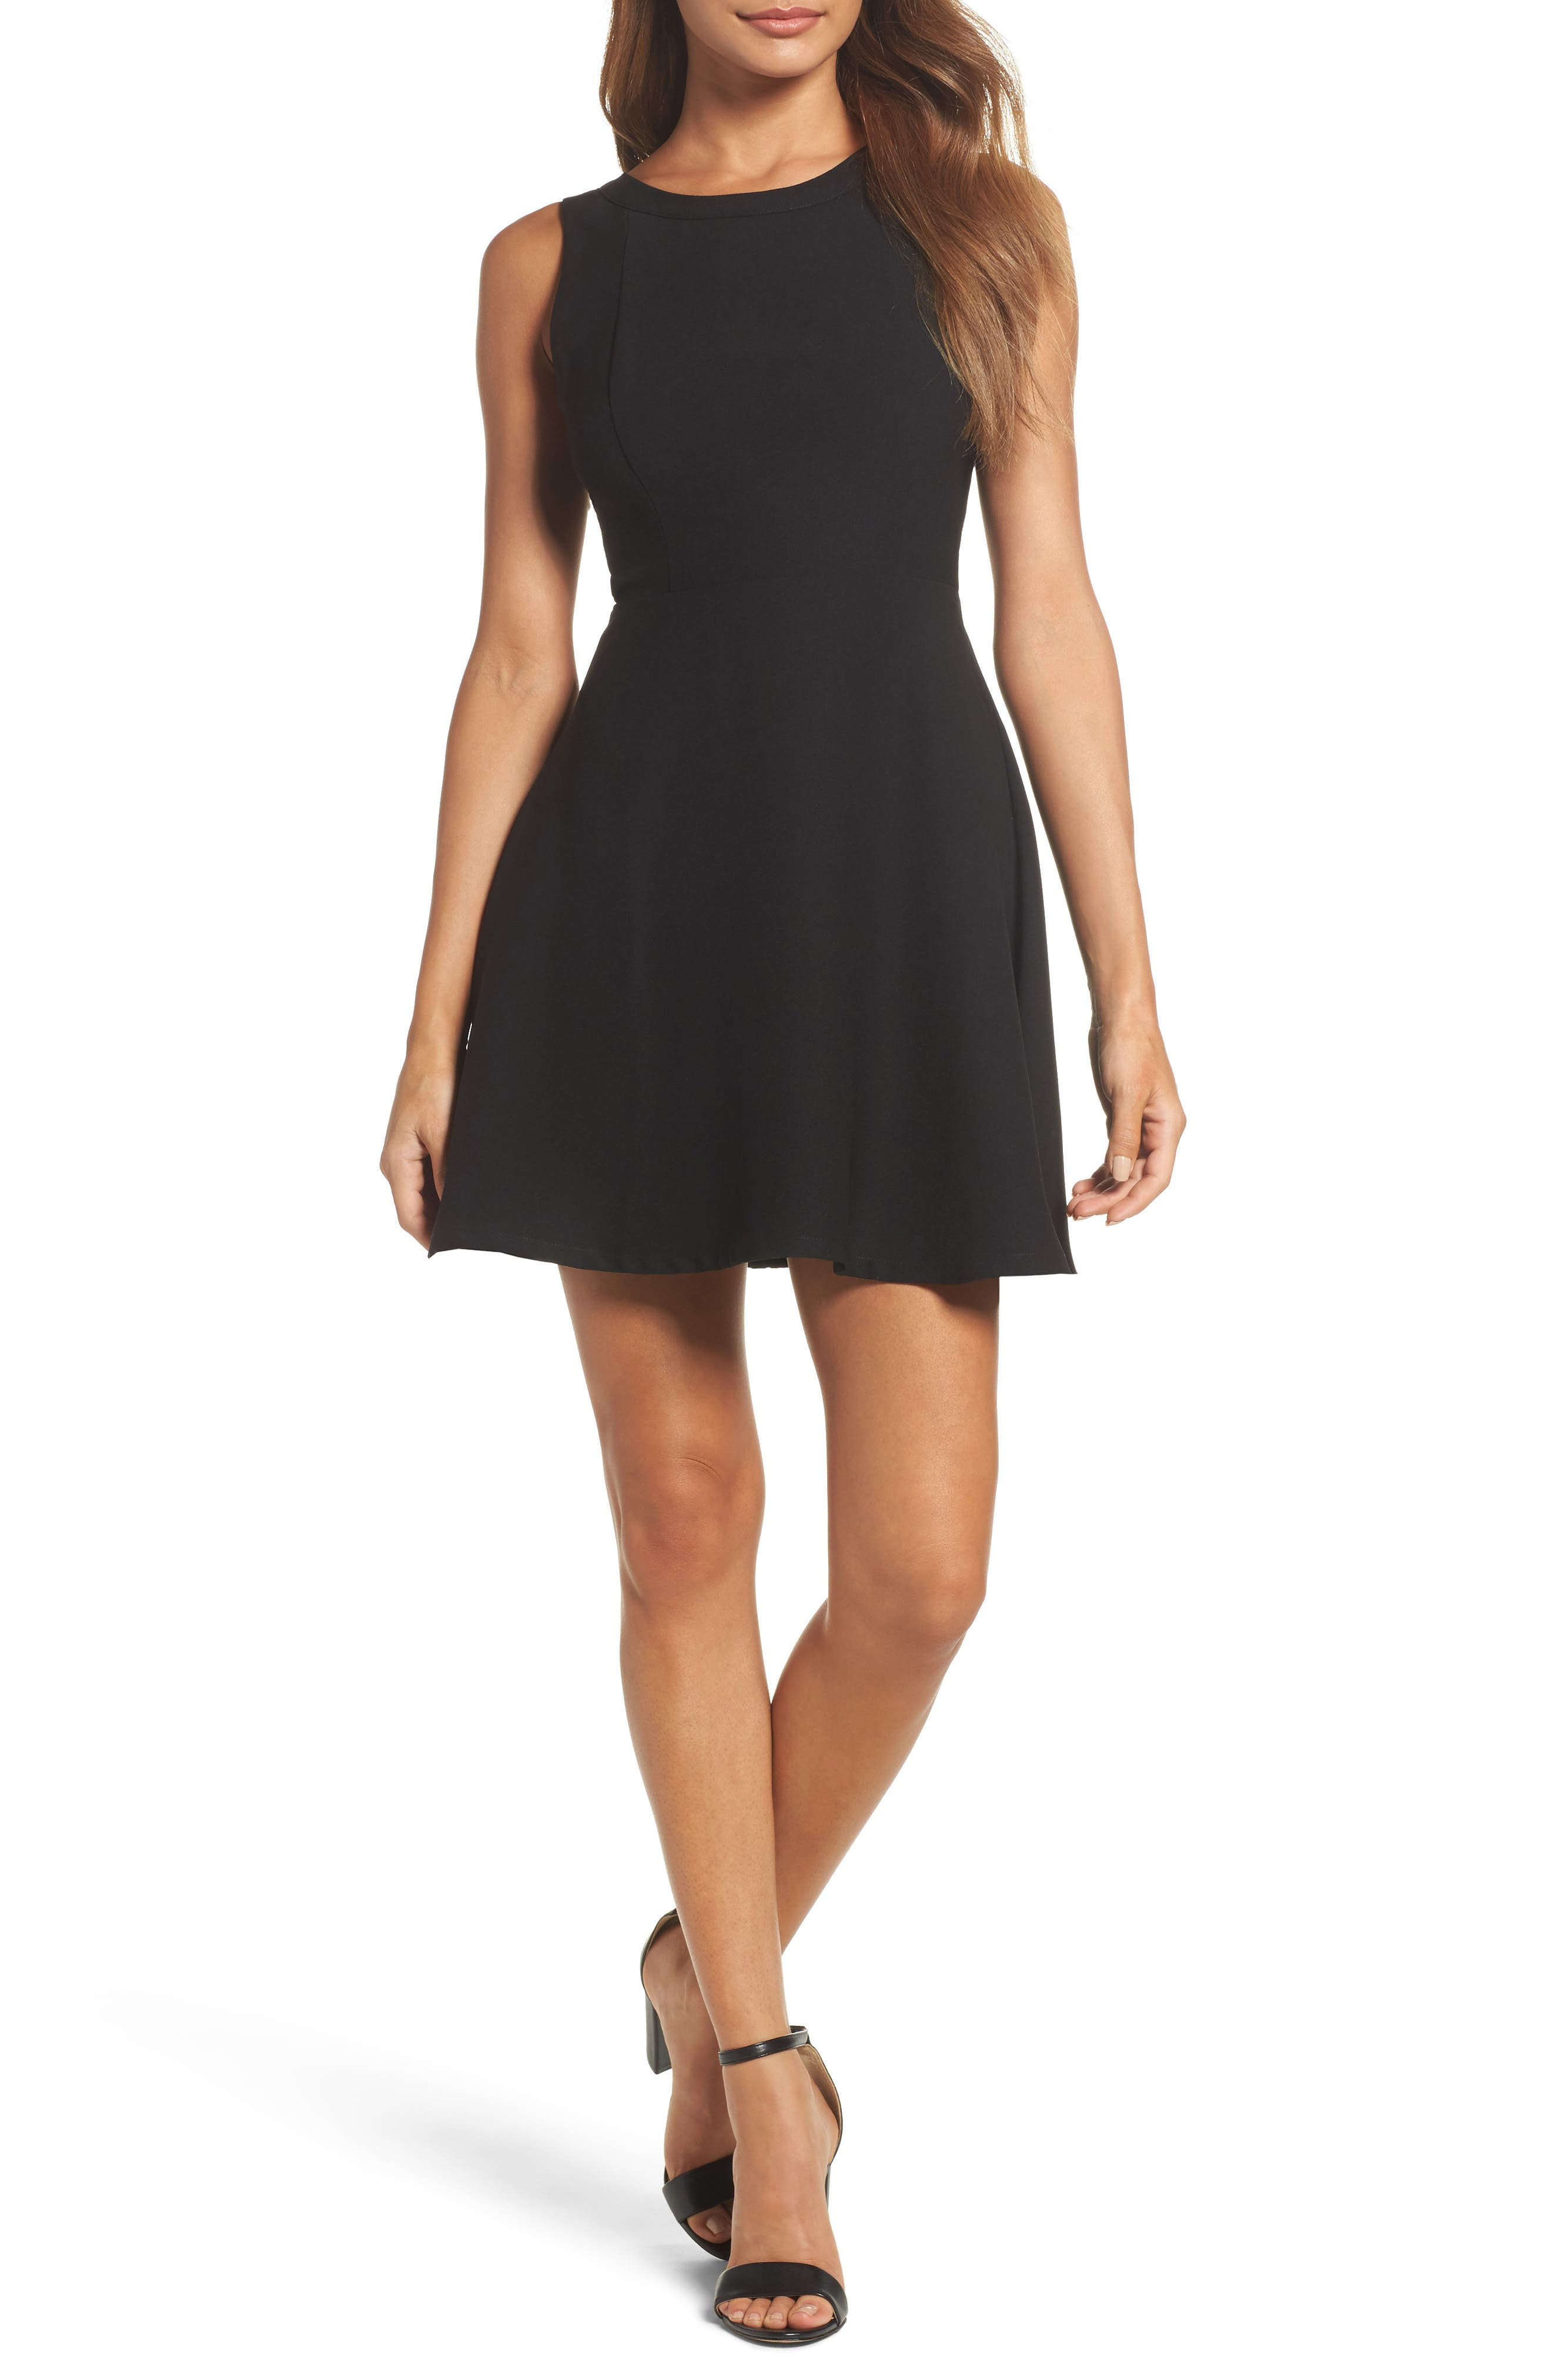 Main Image - 19 Cooper Crepe Fit & Flare Dress